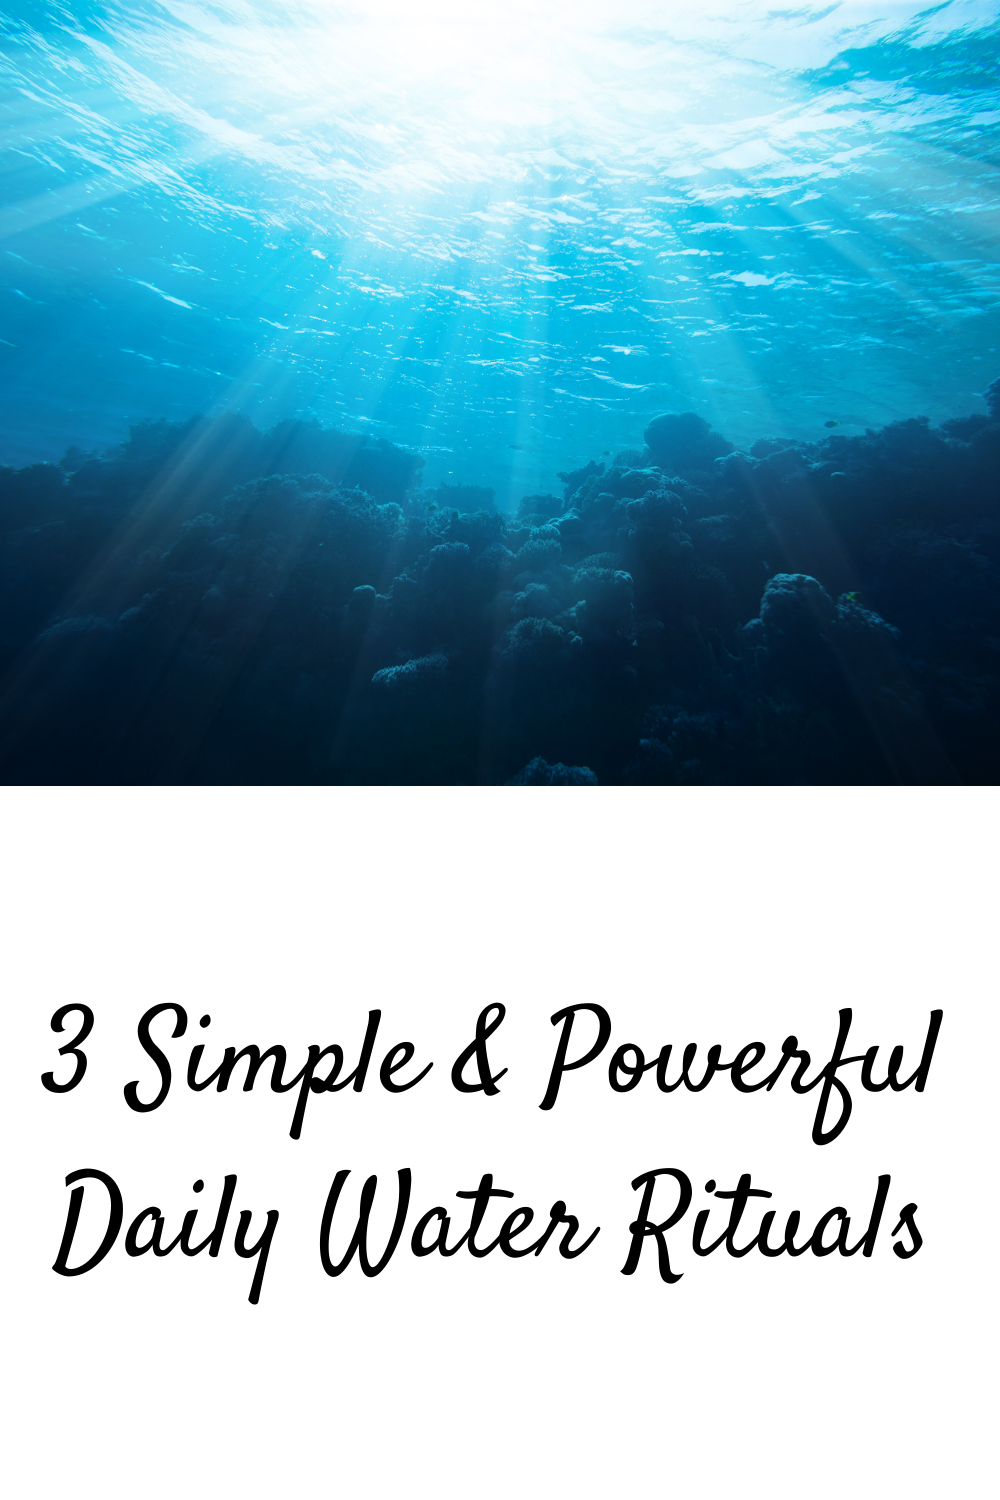 3 Simple & Powerful Daily Water Rituals